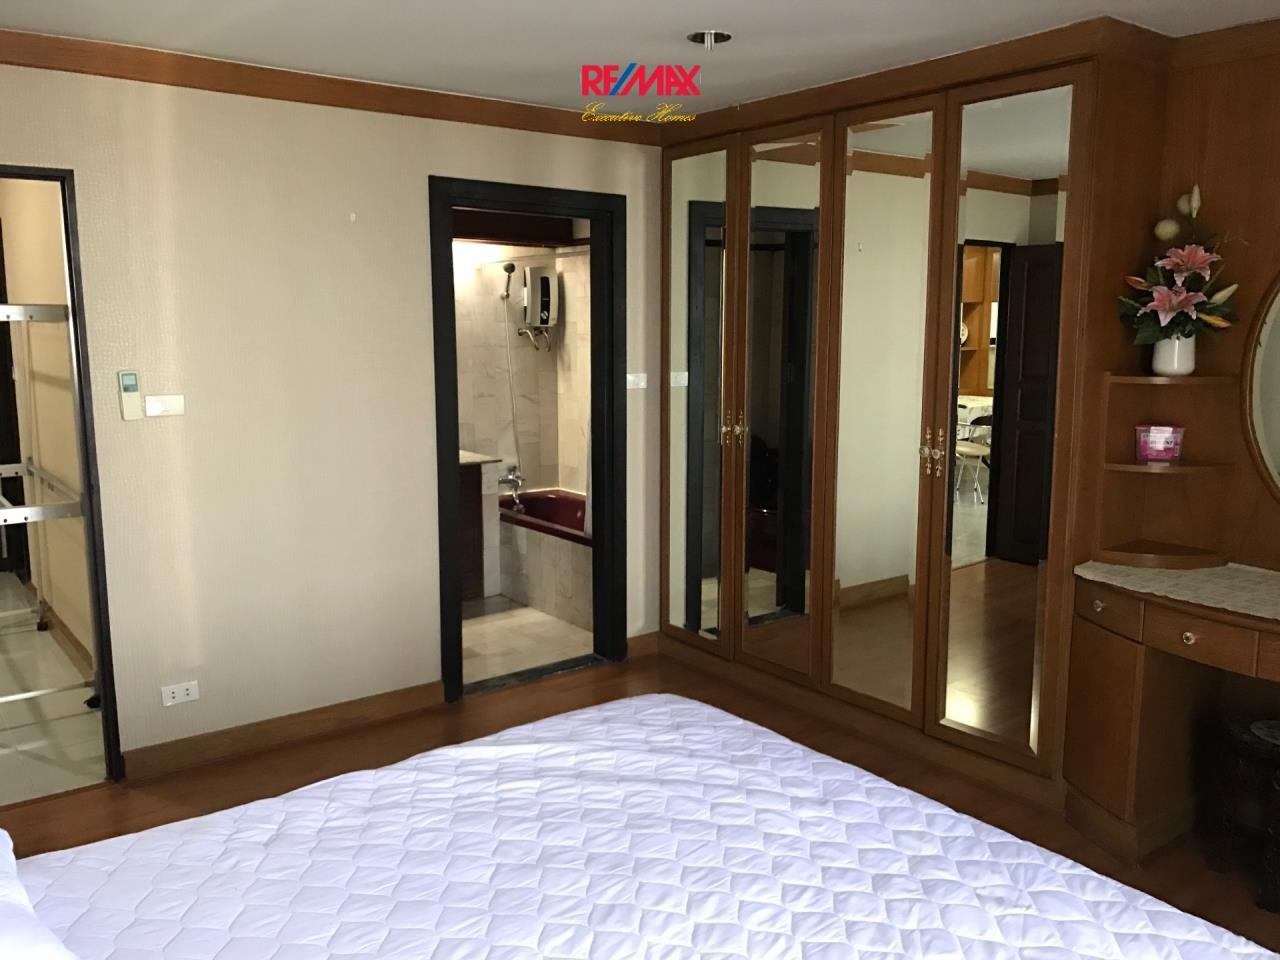 RE/MAX Executive Homes Agency's Spacious 2 Bedroom for Rent Supalai Place 39 4